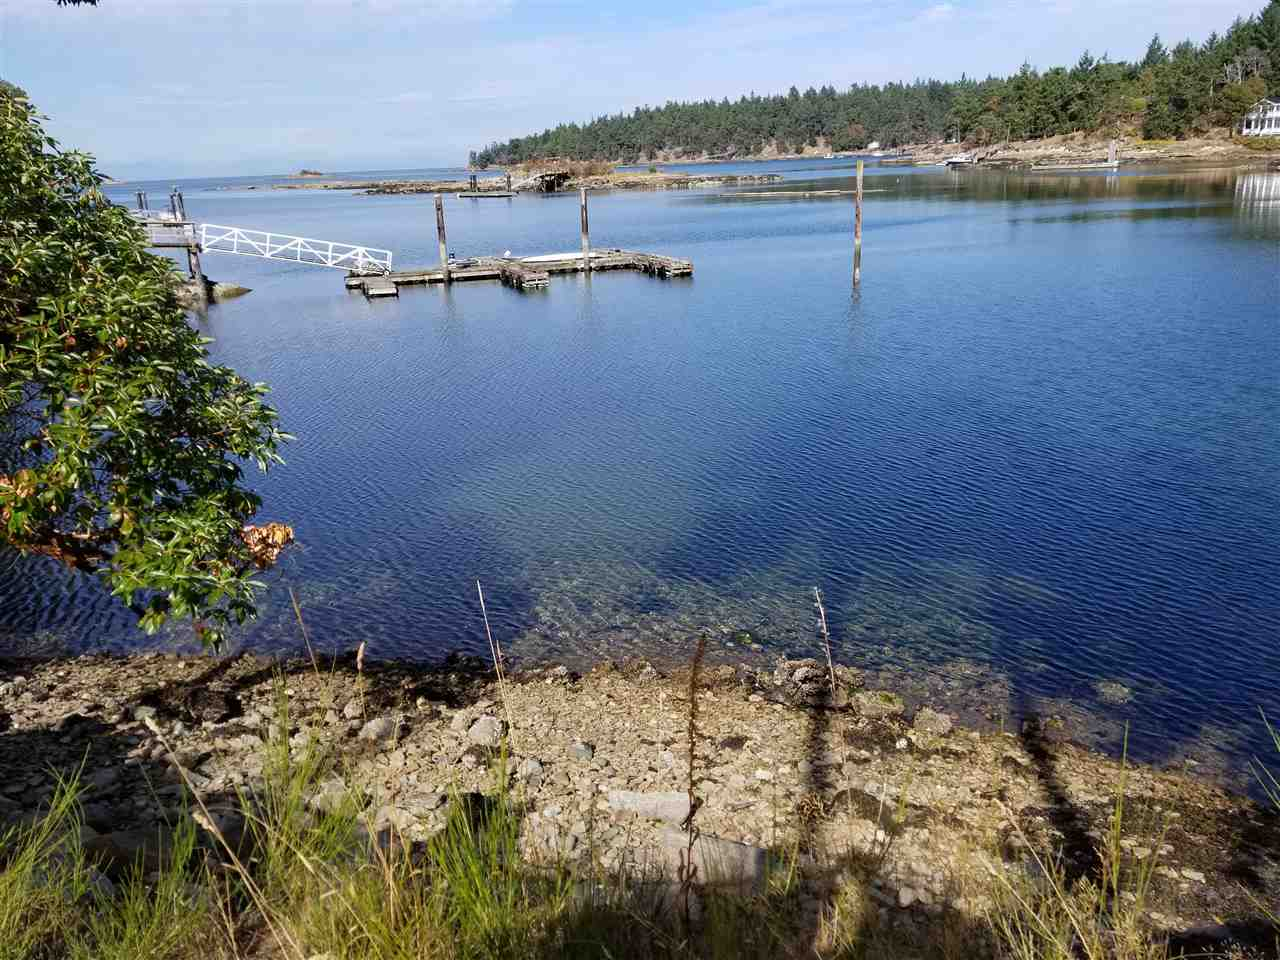 Lovely Whaler Bay waterfront property of 0.37 acres enjoying panoramic views of the bay and across the Strait of Georgia to the Coast Range mountains. Over 88 feet of accessible shoreline. On community water system. Amenities nearby. Walking distance to the Sturdies Bay ferry terminal, shops and eateries. Tie up your boat at the government dock in the same bay. Property has been cleared and is ready for your dream home on beautiful Galiano Island.